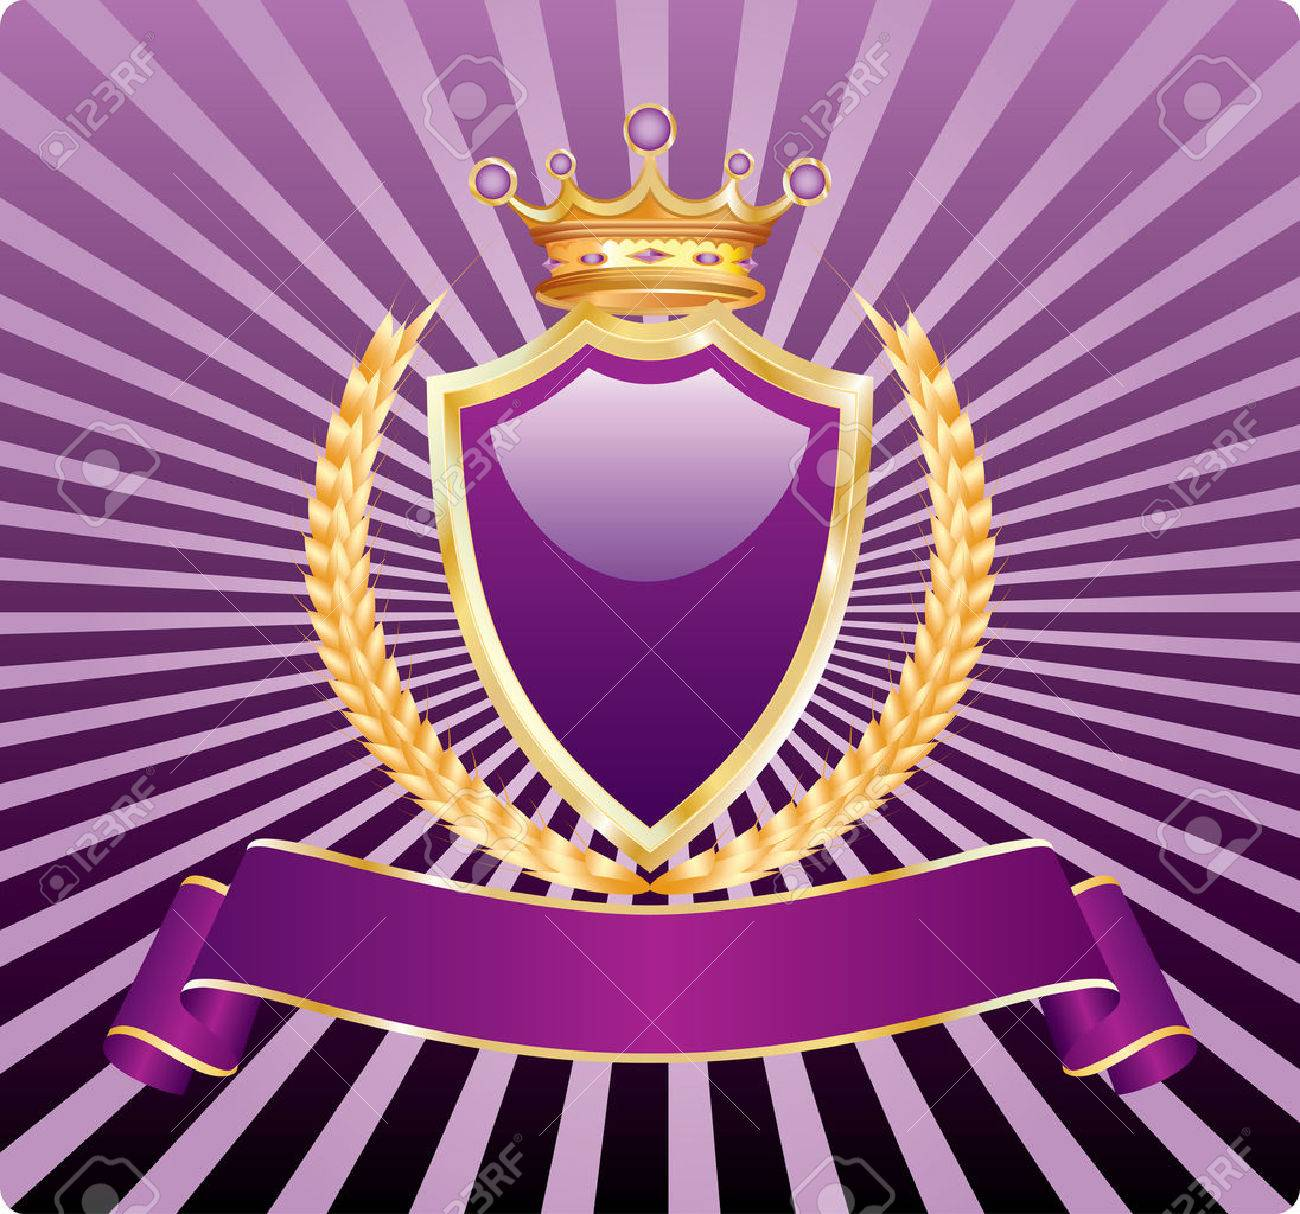 Image result for purple crown